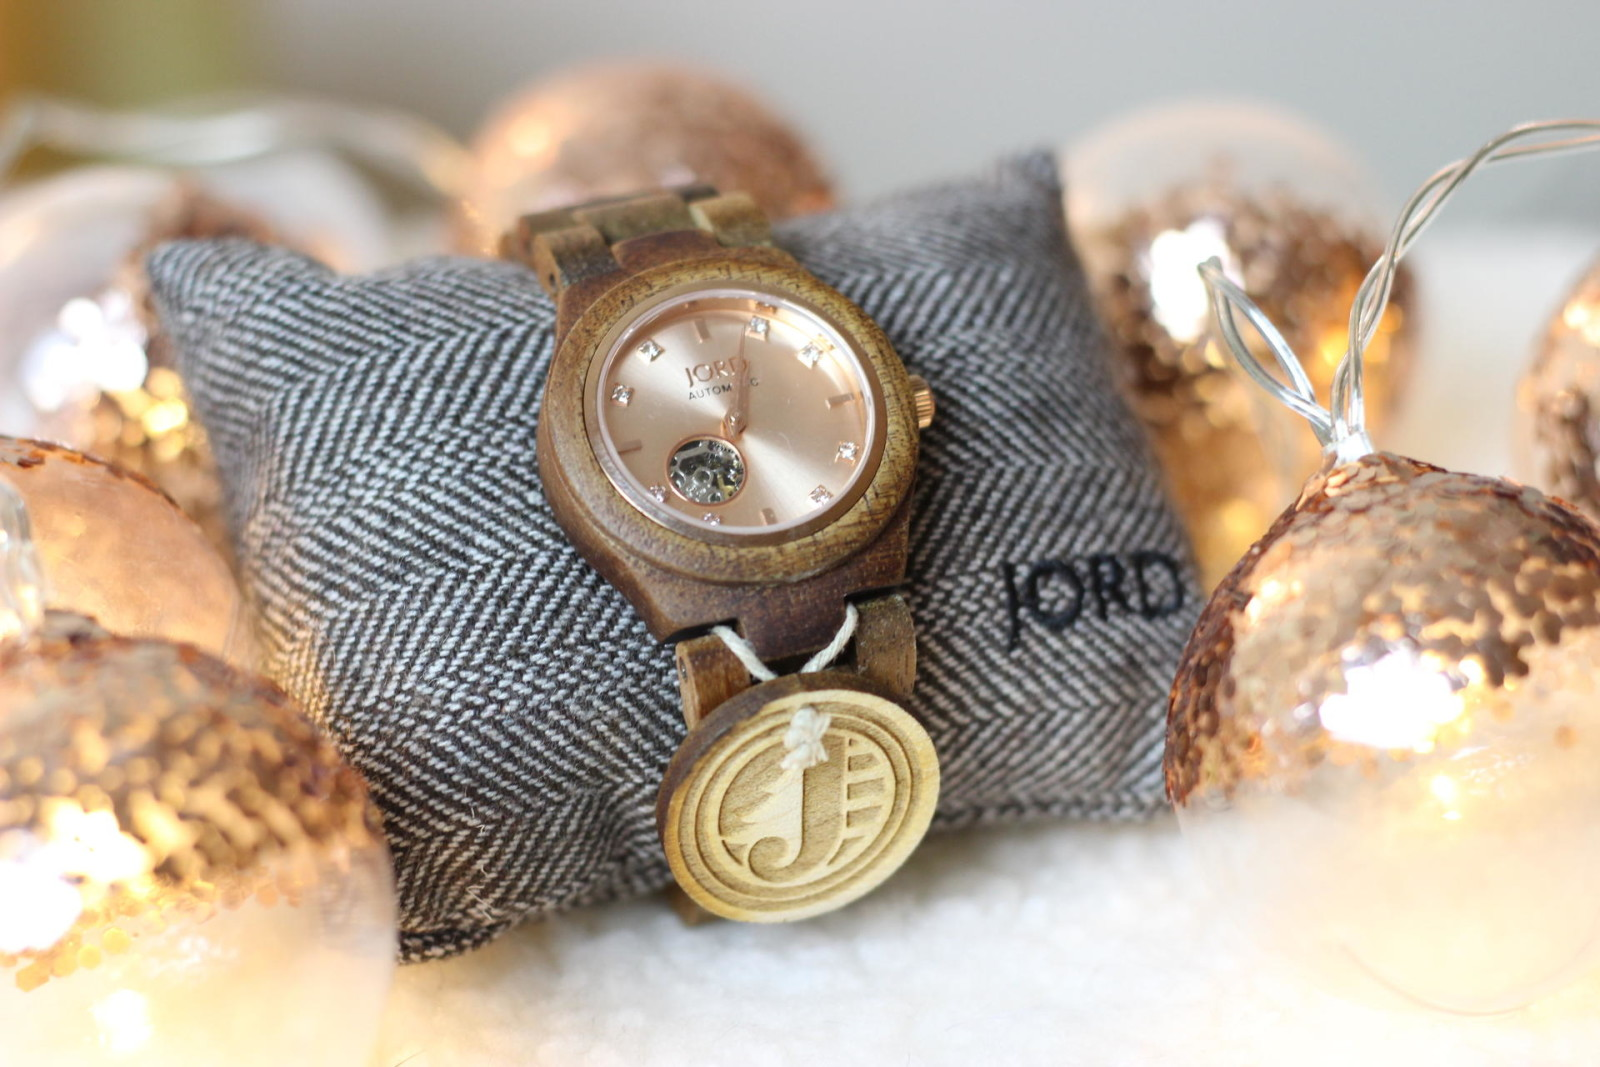 JORD wood watch Cora Koa and Rose Gold